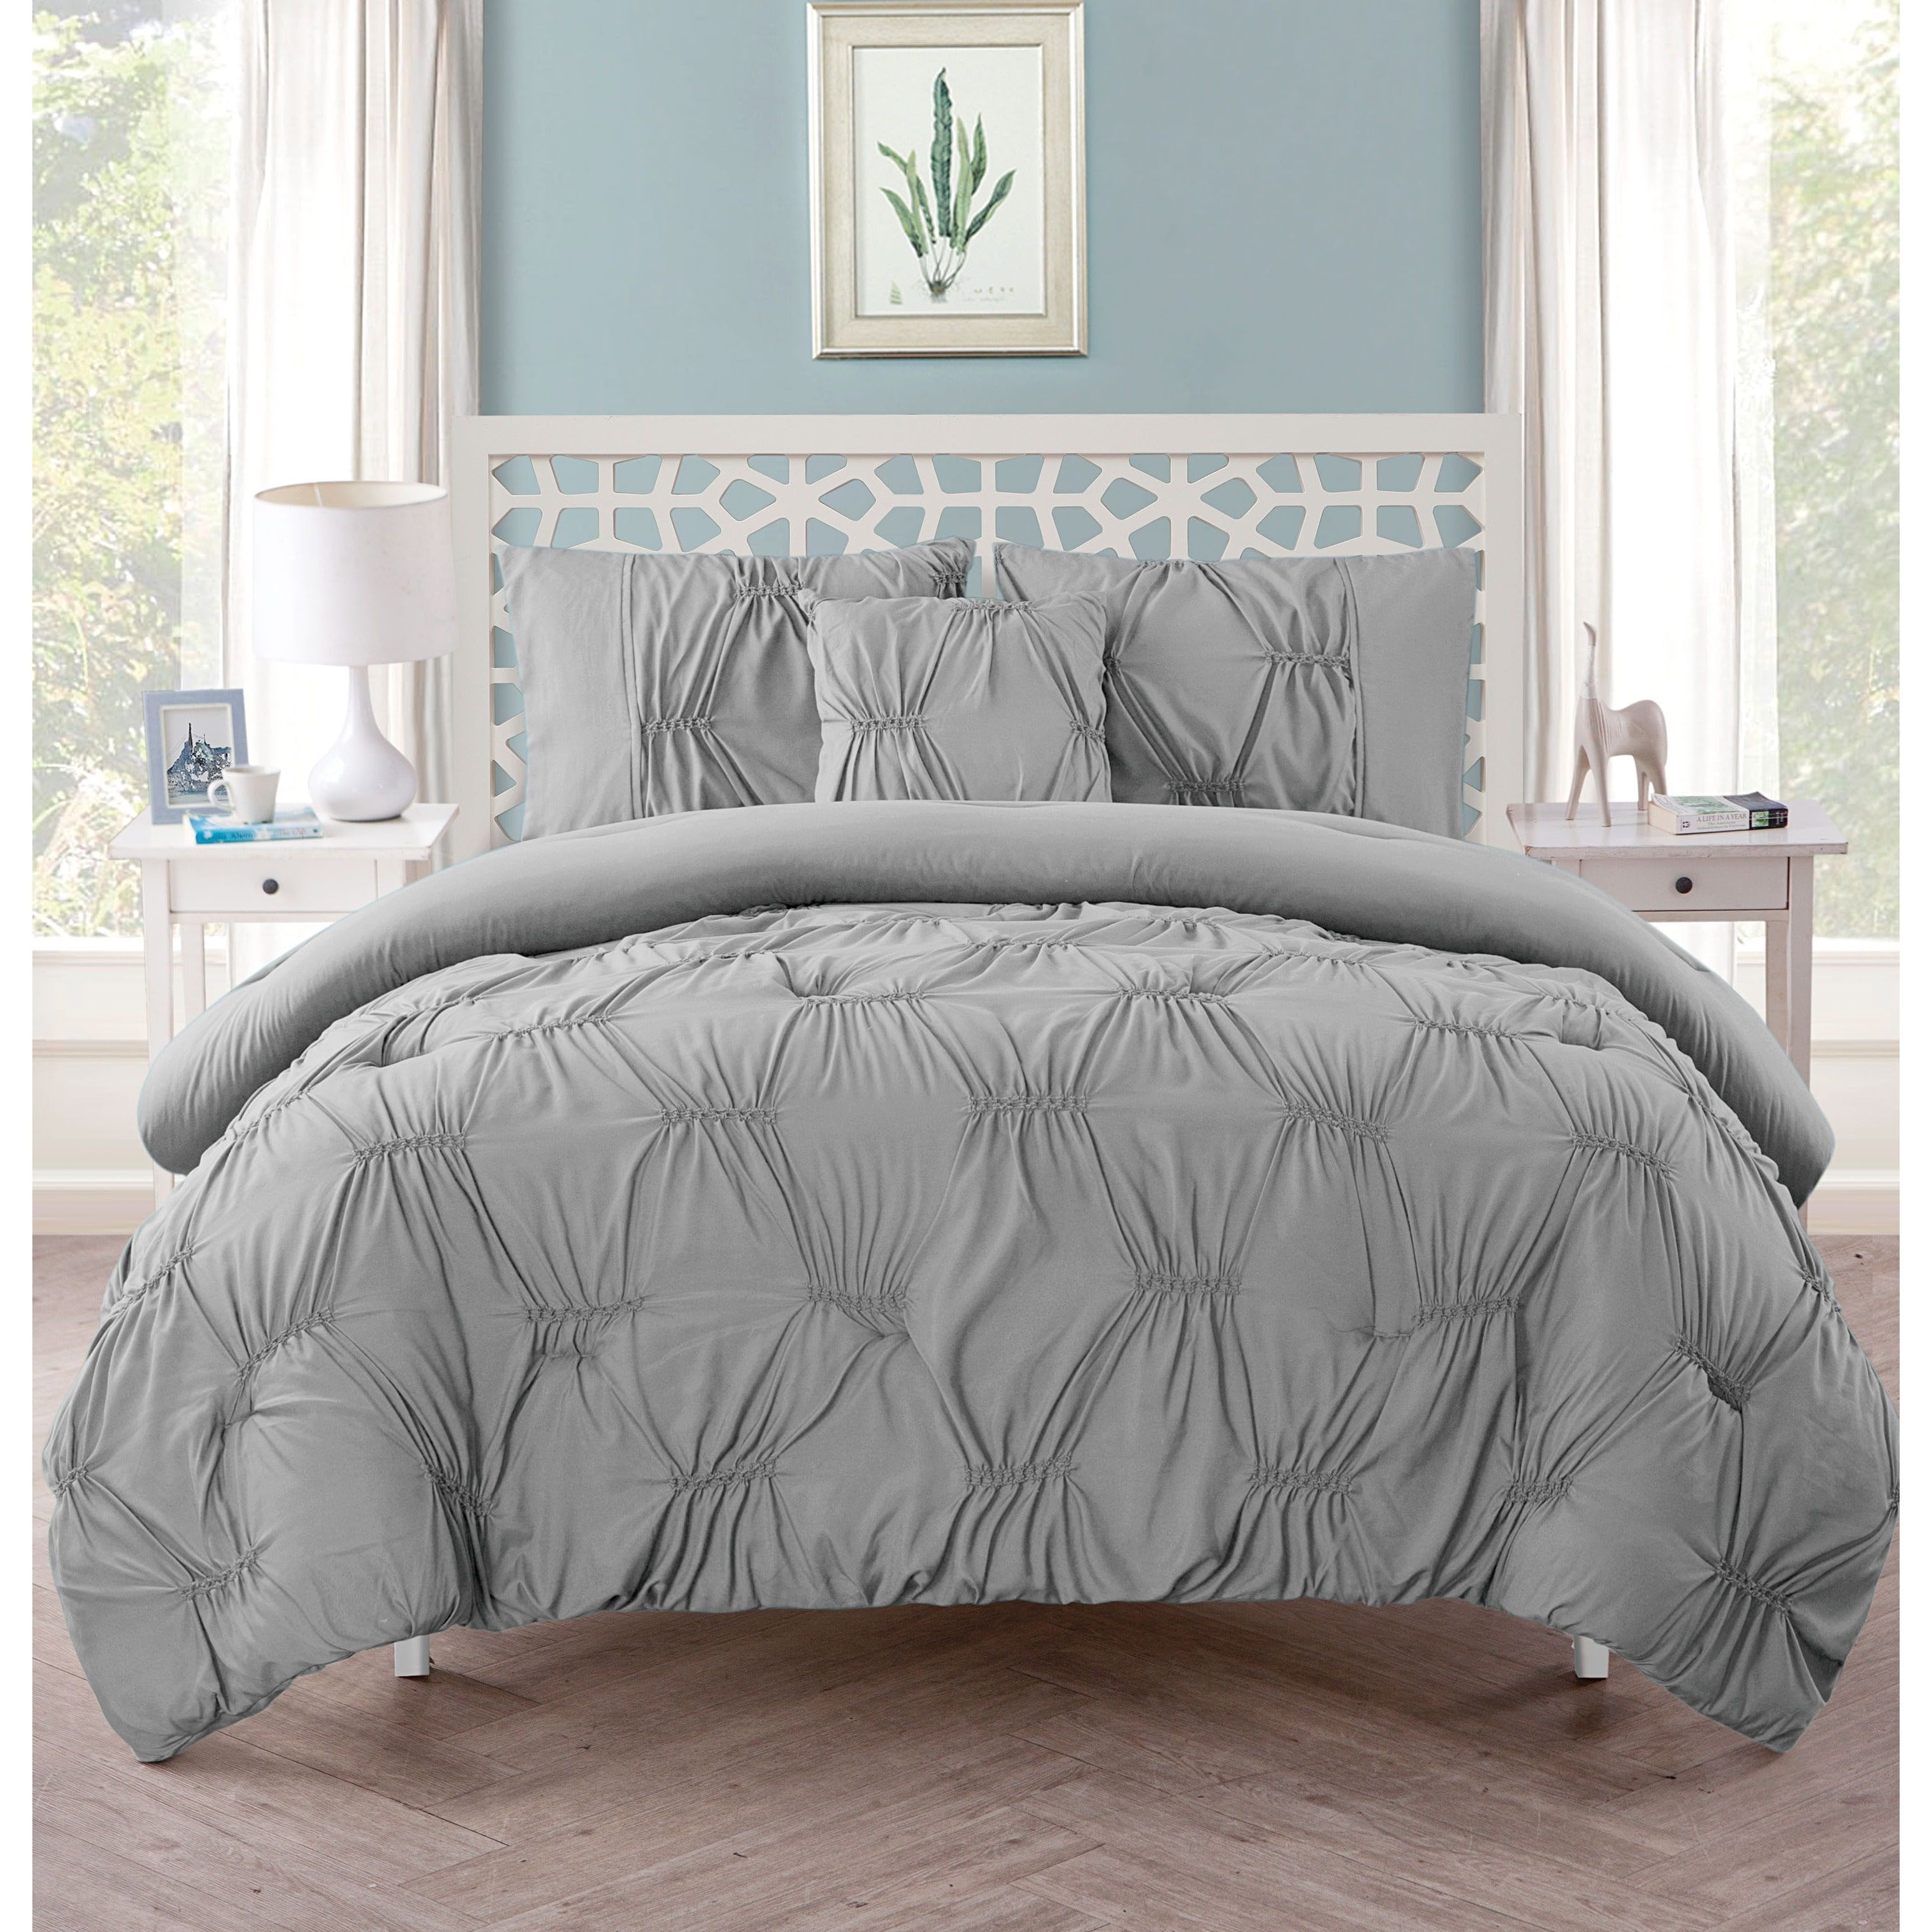 madison bedding bed free overstock on orders shipping product bath comforter park grey lafayette com set